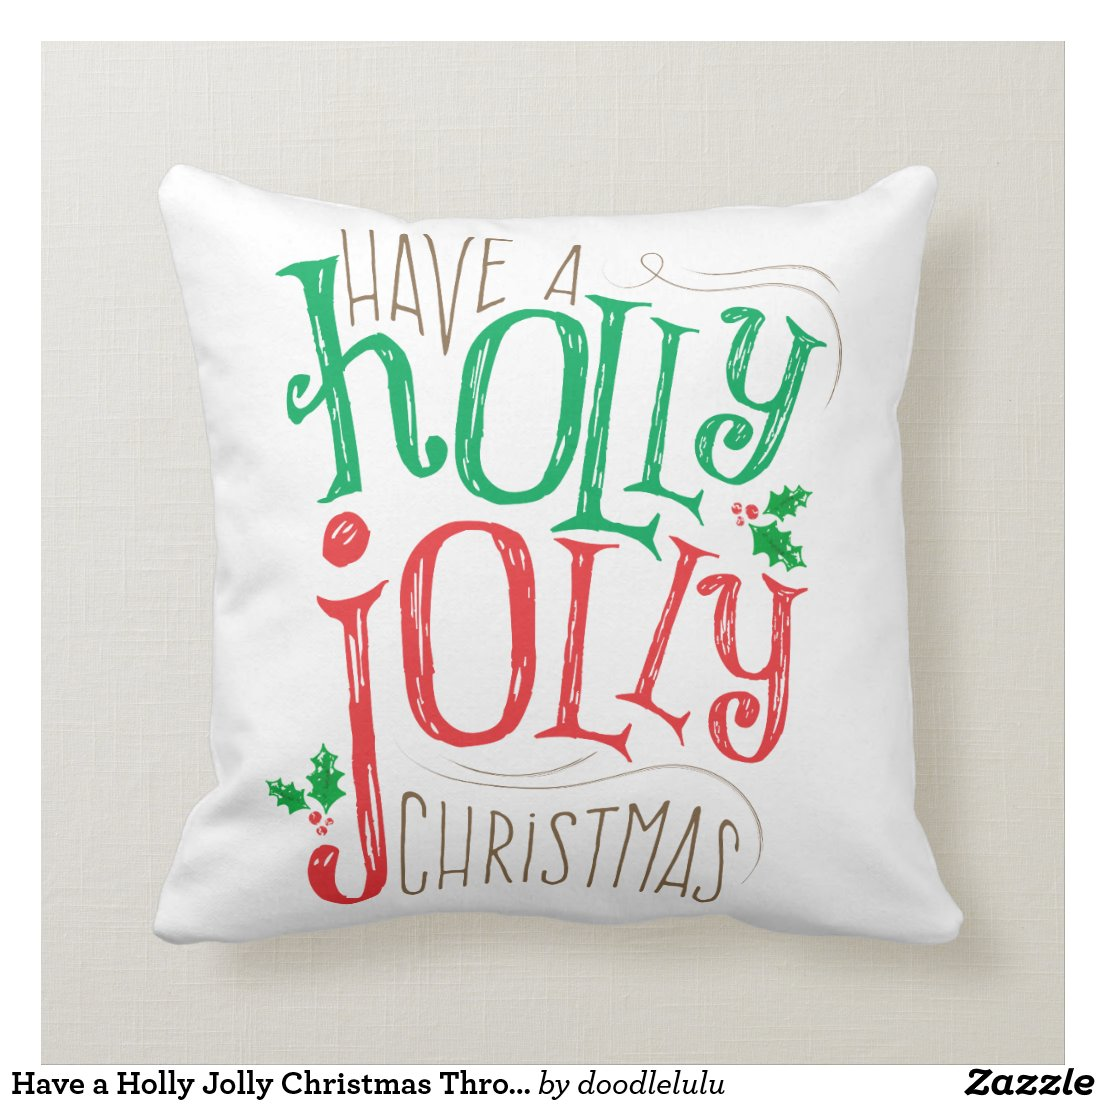 Have a Holly Jolly Christmas Throw Pillow Black